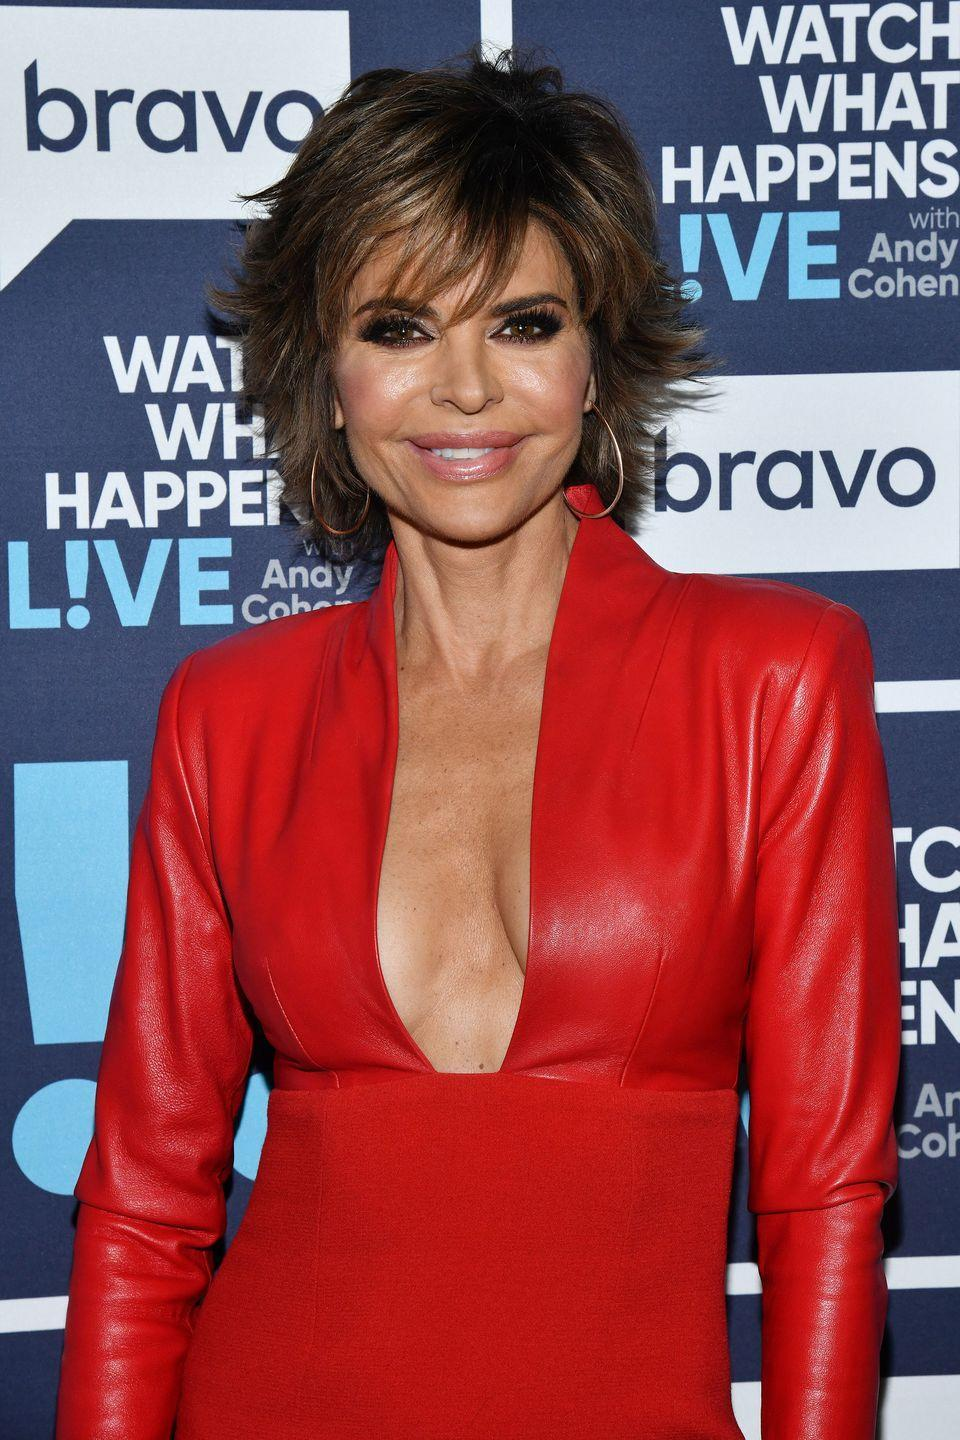 """<p>Real Housewives of Beverly Hills star Lisa Rinna is known for her lips, so it was a surprise when she opened up about getting her injections reduced years later. 'I have it like that for my whole career, right?' <a href=""""https://www.tvguide.com/news/lisa-rinna-lip-trouble-today-video-1062939/"""" rel=""""nofollow noopener"""" target=""""_blank"""" data-ylk=""""slk:Lisa said"""" class=""""link rapid-noclick-resp"""">Lisa said</a>, adding it was a 'stupid thing to do at 24.' </p><p>'So then cut to a couple of years ago, I have a doctor remove as much as they possibly can because it got to the point where they were yucky. You know, they get hard. It's gross. So they are now whatever that was after they took out as much of the silicone as they could.'</p>"""